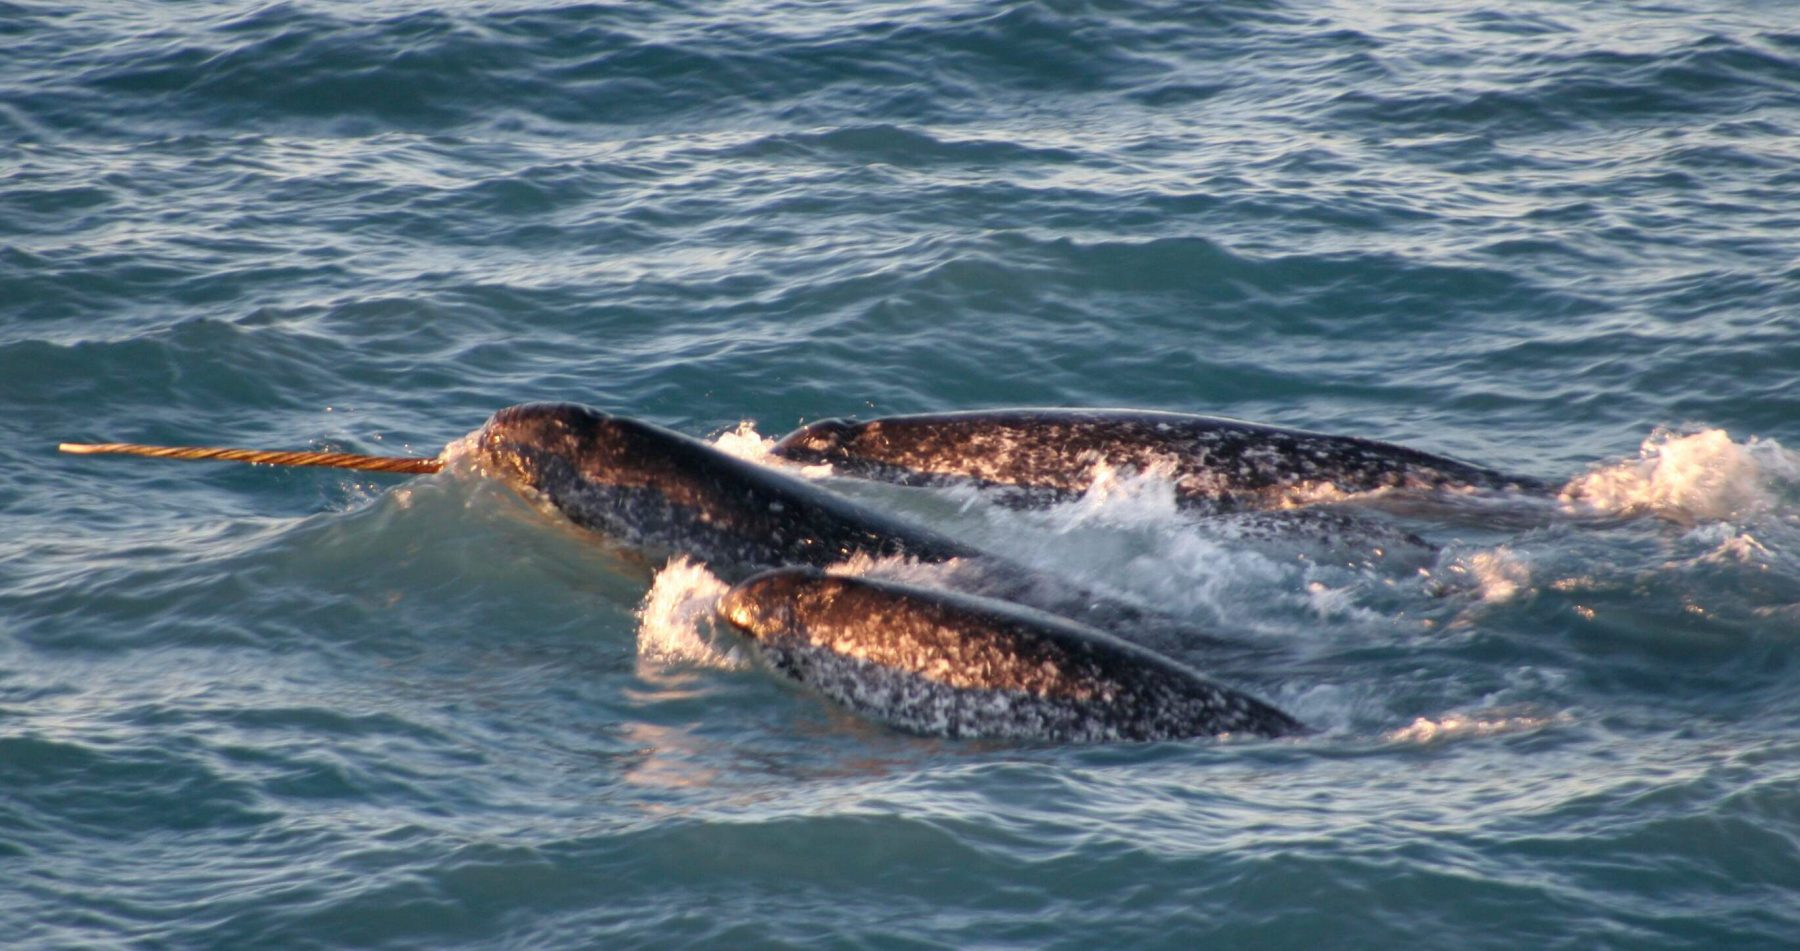 Narwhals pictured above in the Canadian Arctic. Their tusks can sell for several thousand dollars. (Kristin Laidre/NOAA/AP)